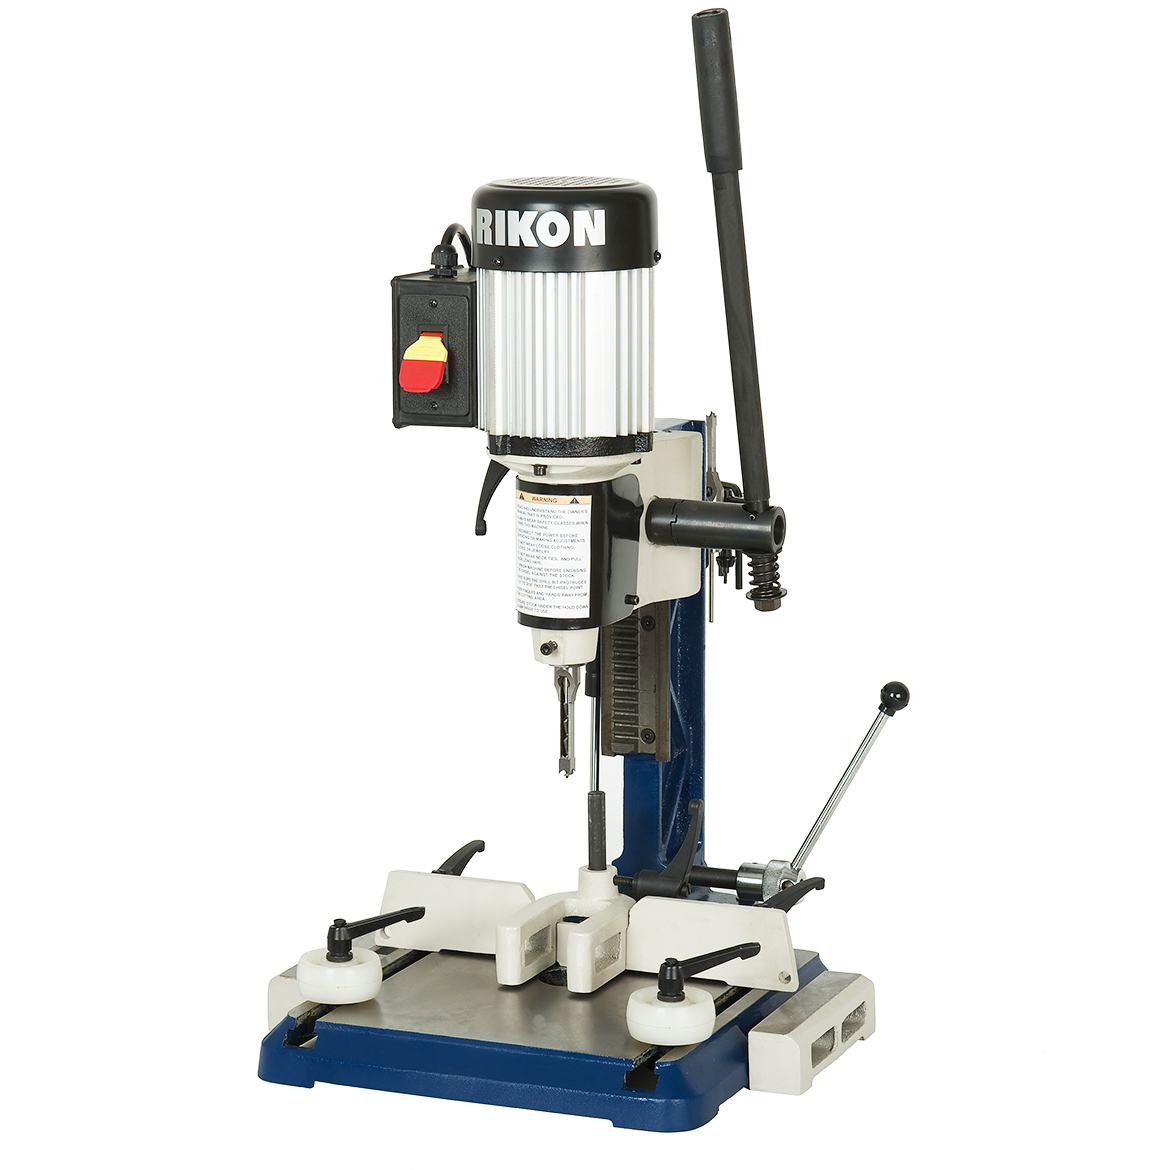 RIKON 34-255 120-Volt 1/2-Hp Bench Top Mortising Machine w/ Extension wings